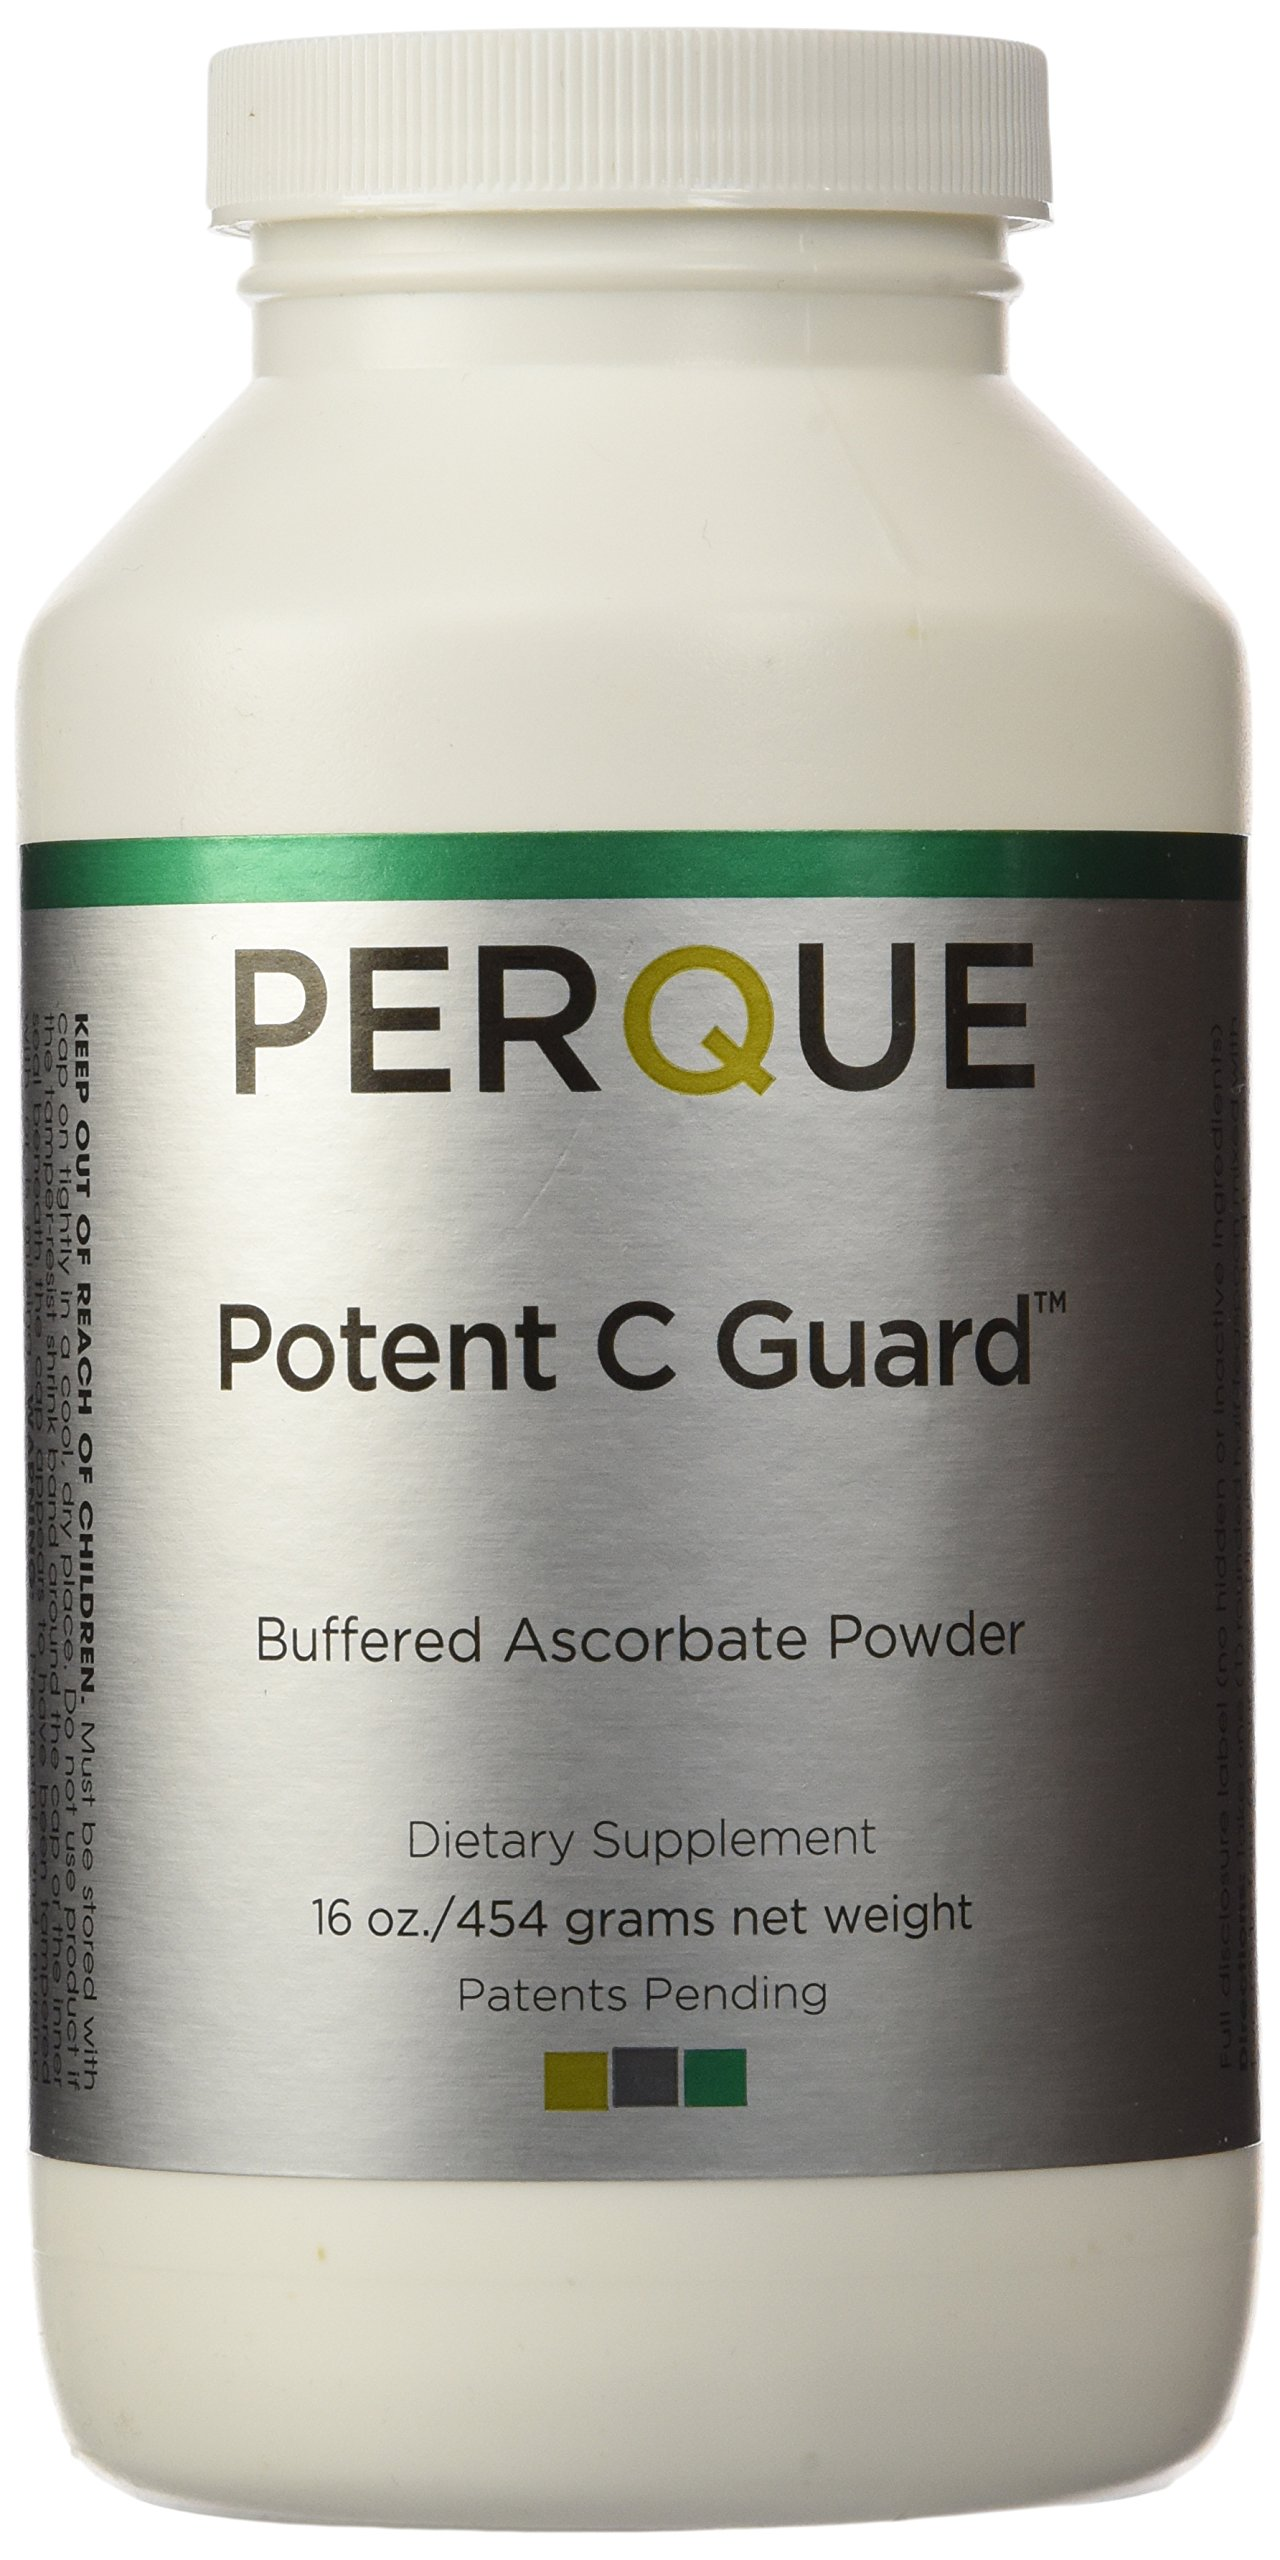 Perque Potent C Guard Powder, 16 Oz by Perque